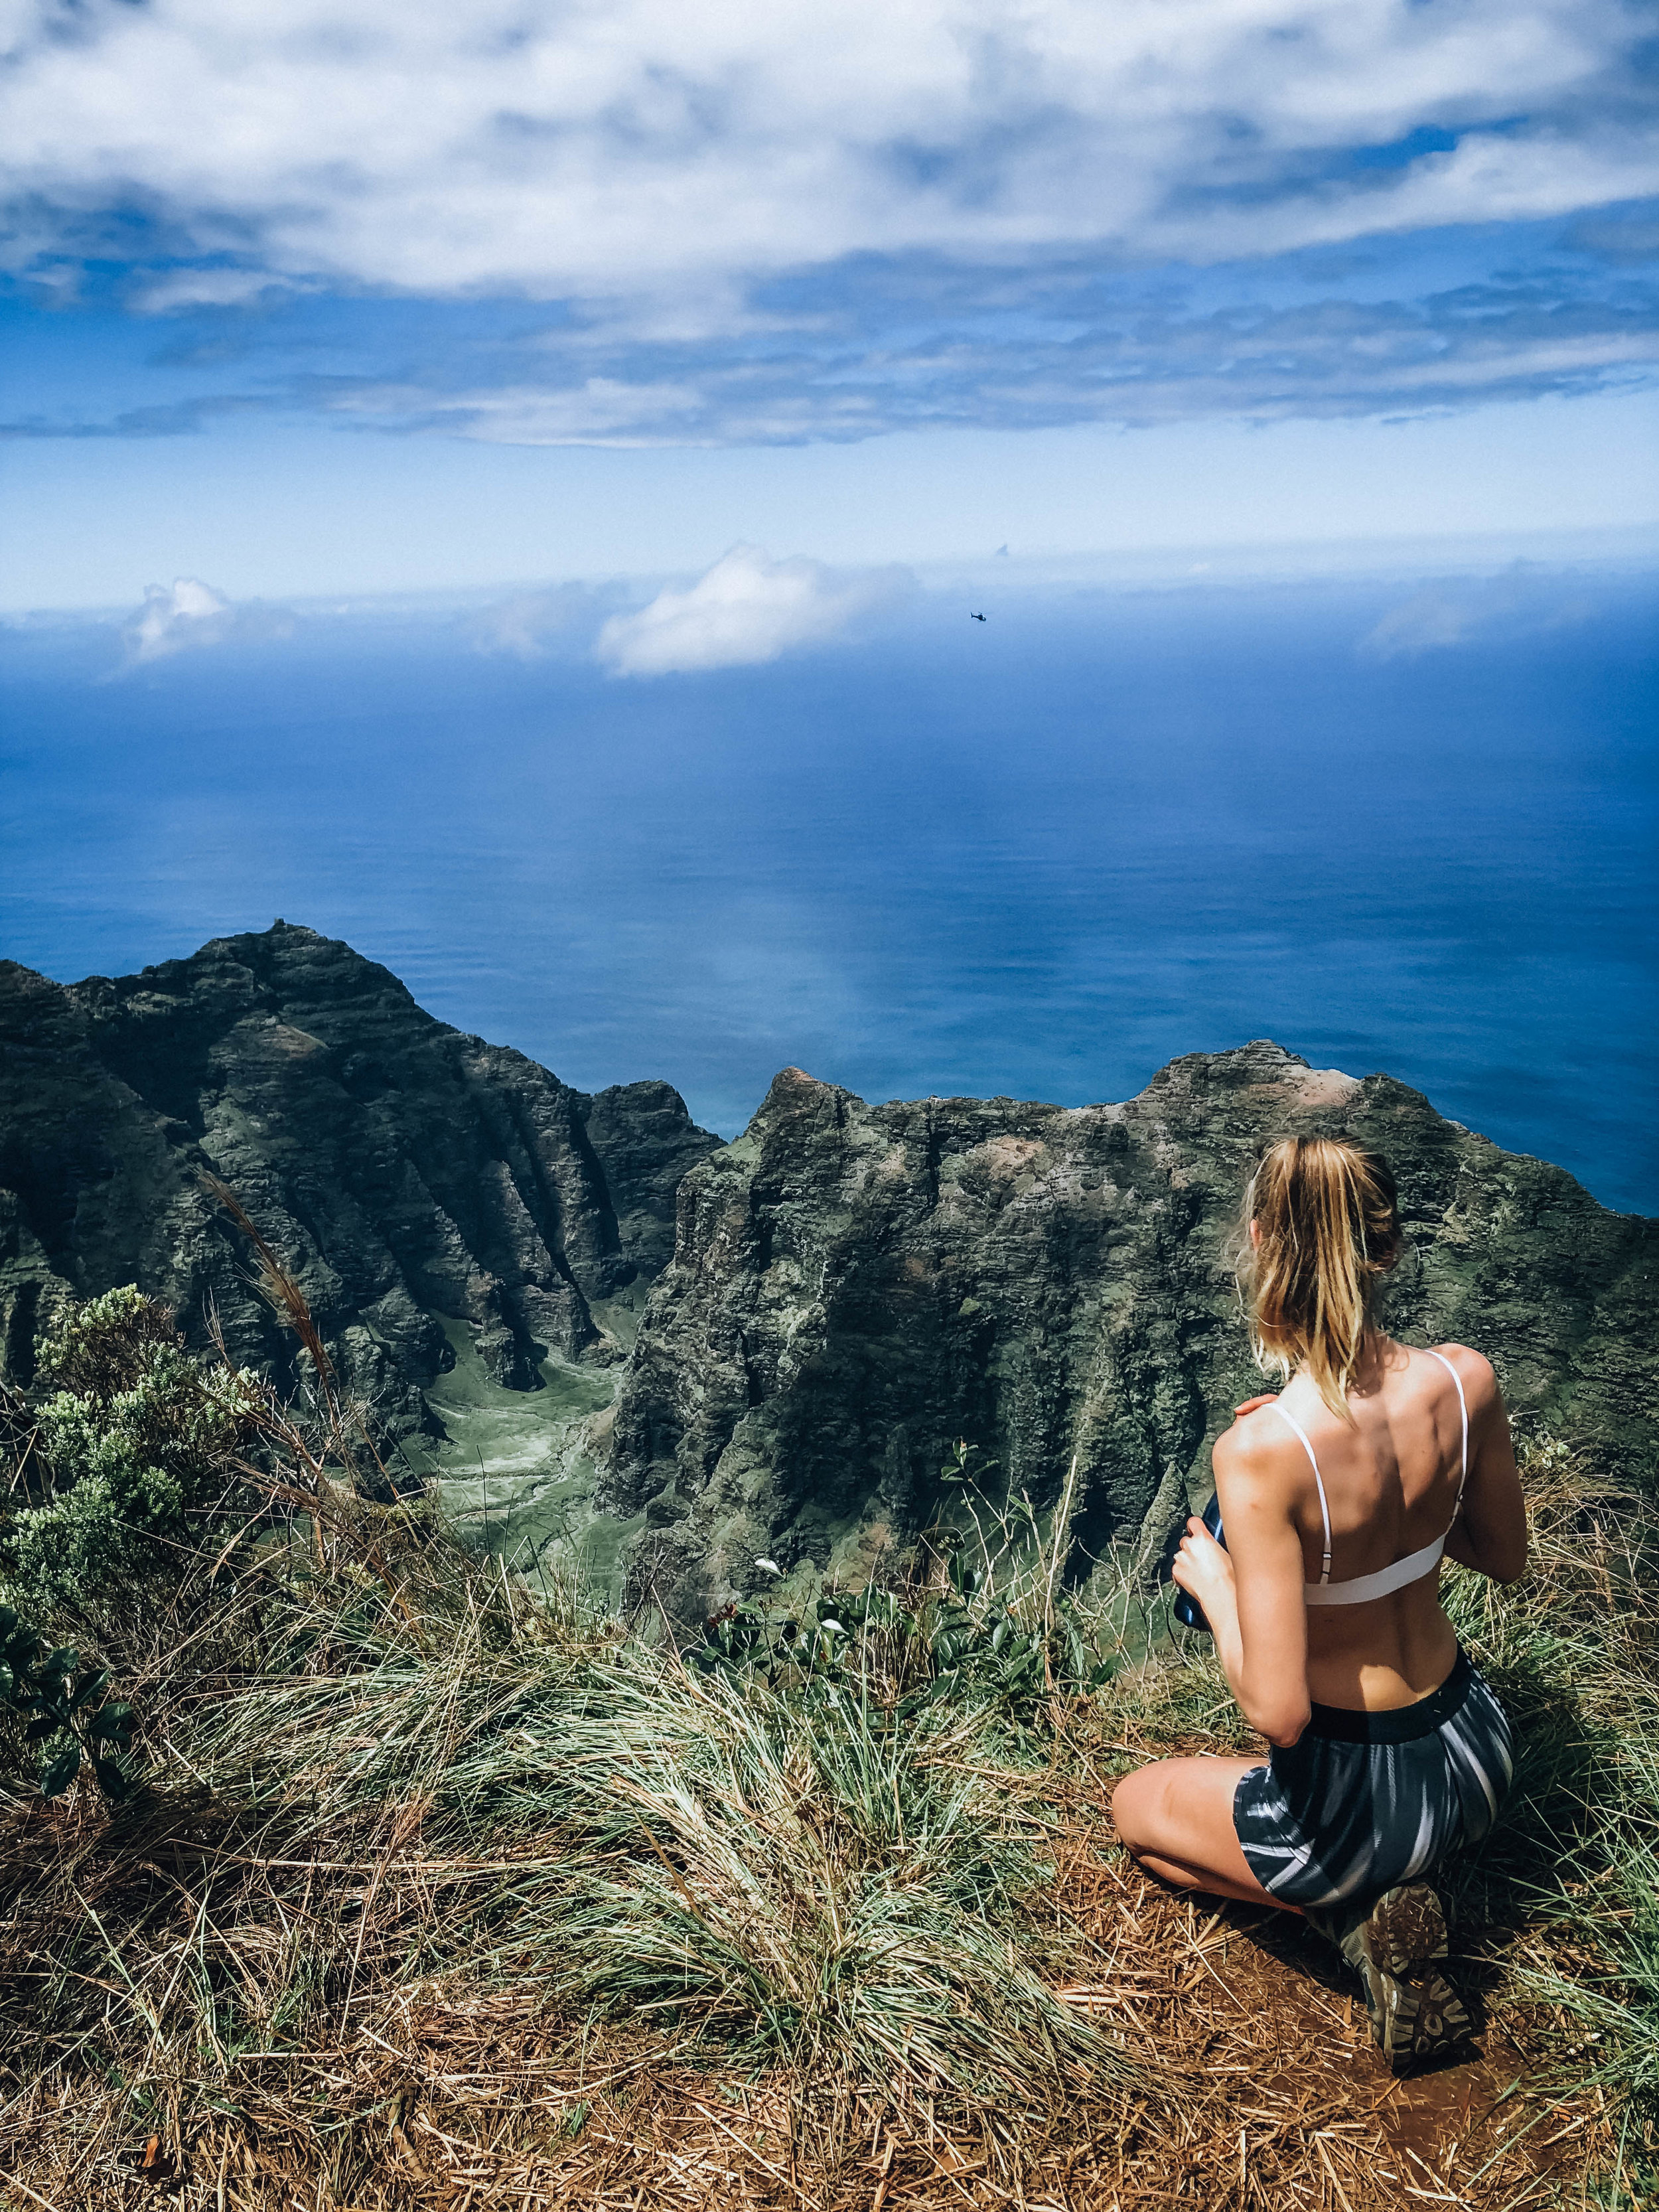 View from the Awaawapuhi Trail on the Na Pali Coast